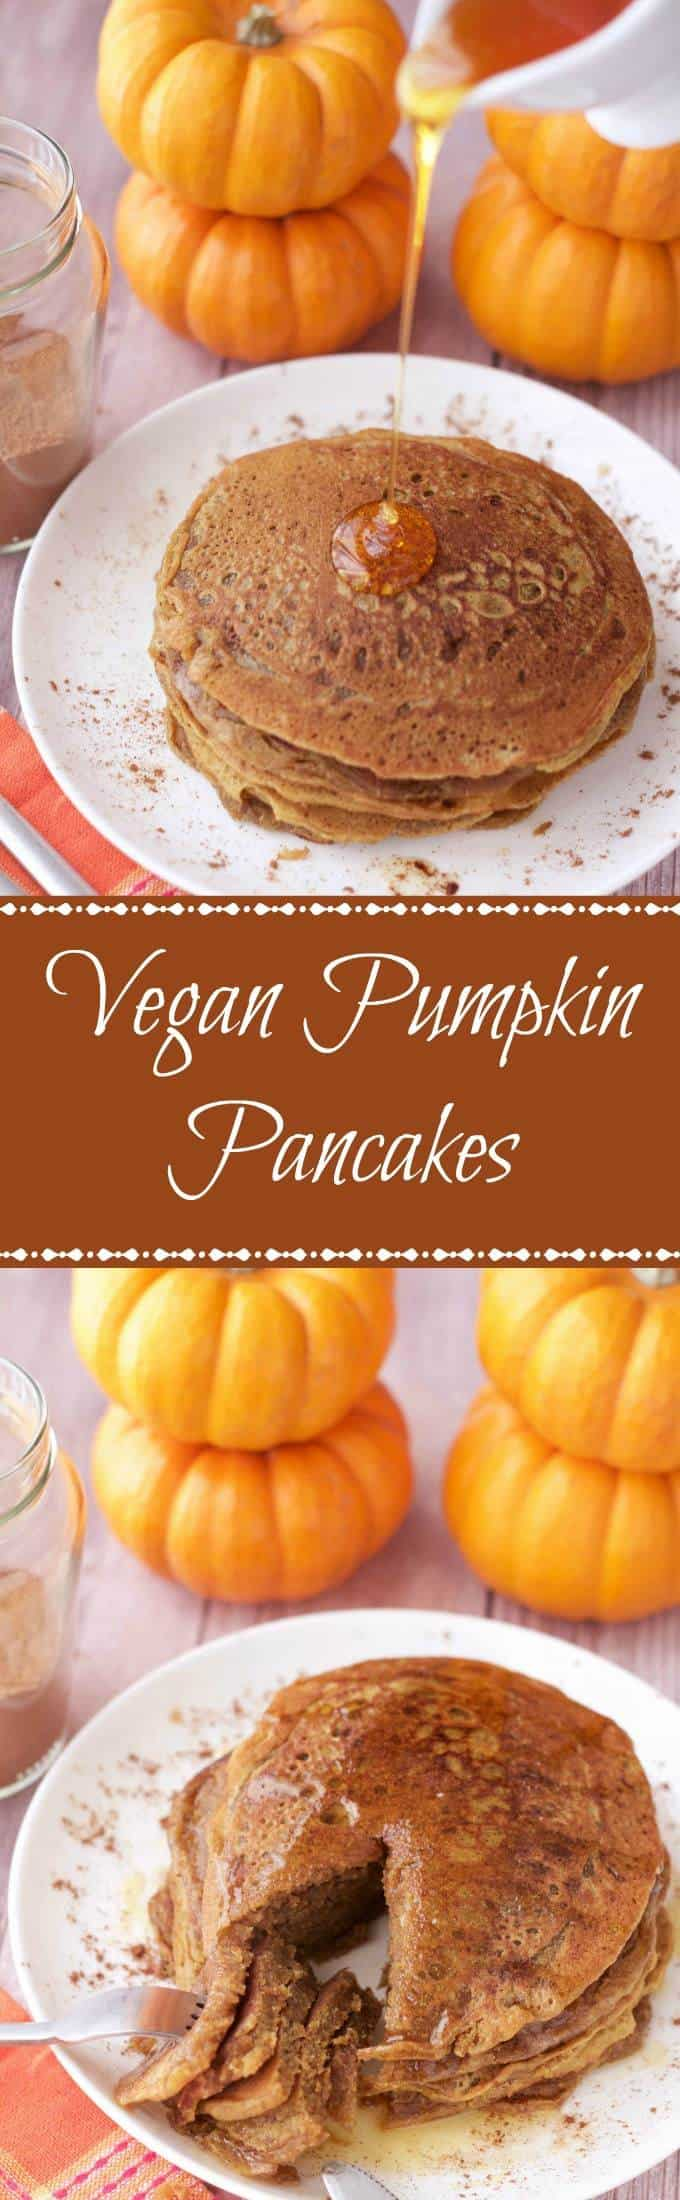 Vegan Pumpkin Pancakes. Perfectly spiced and fabulous for breakfast! #vegan #lovingitvegan #pumpkinpancakes #breakfast